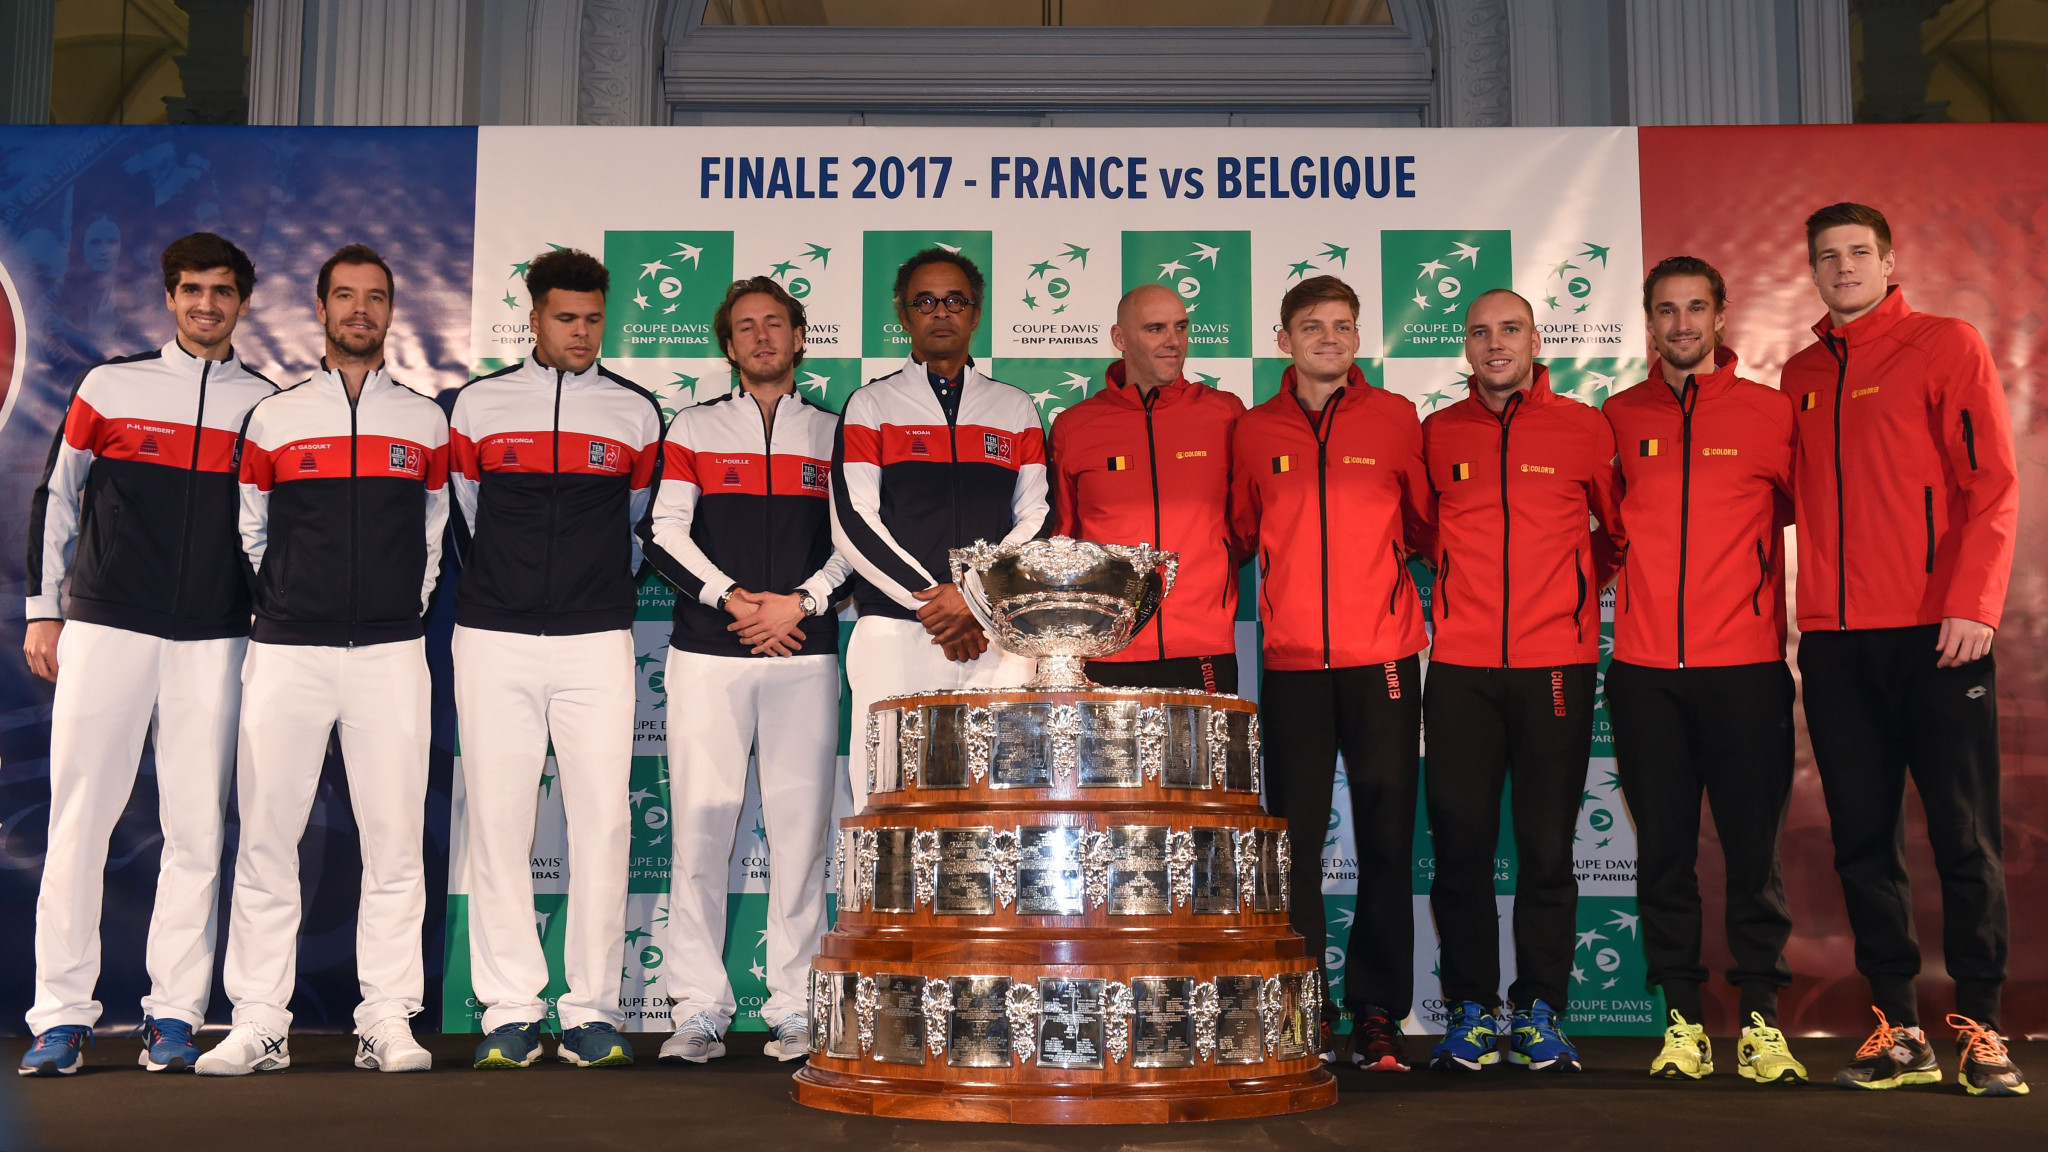 The Davis Cup is set to be revamped by the International Tennis Federation in 2019, meaning two rival team competitions will take place from 2020 ©Getty Images